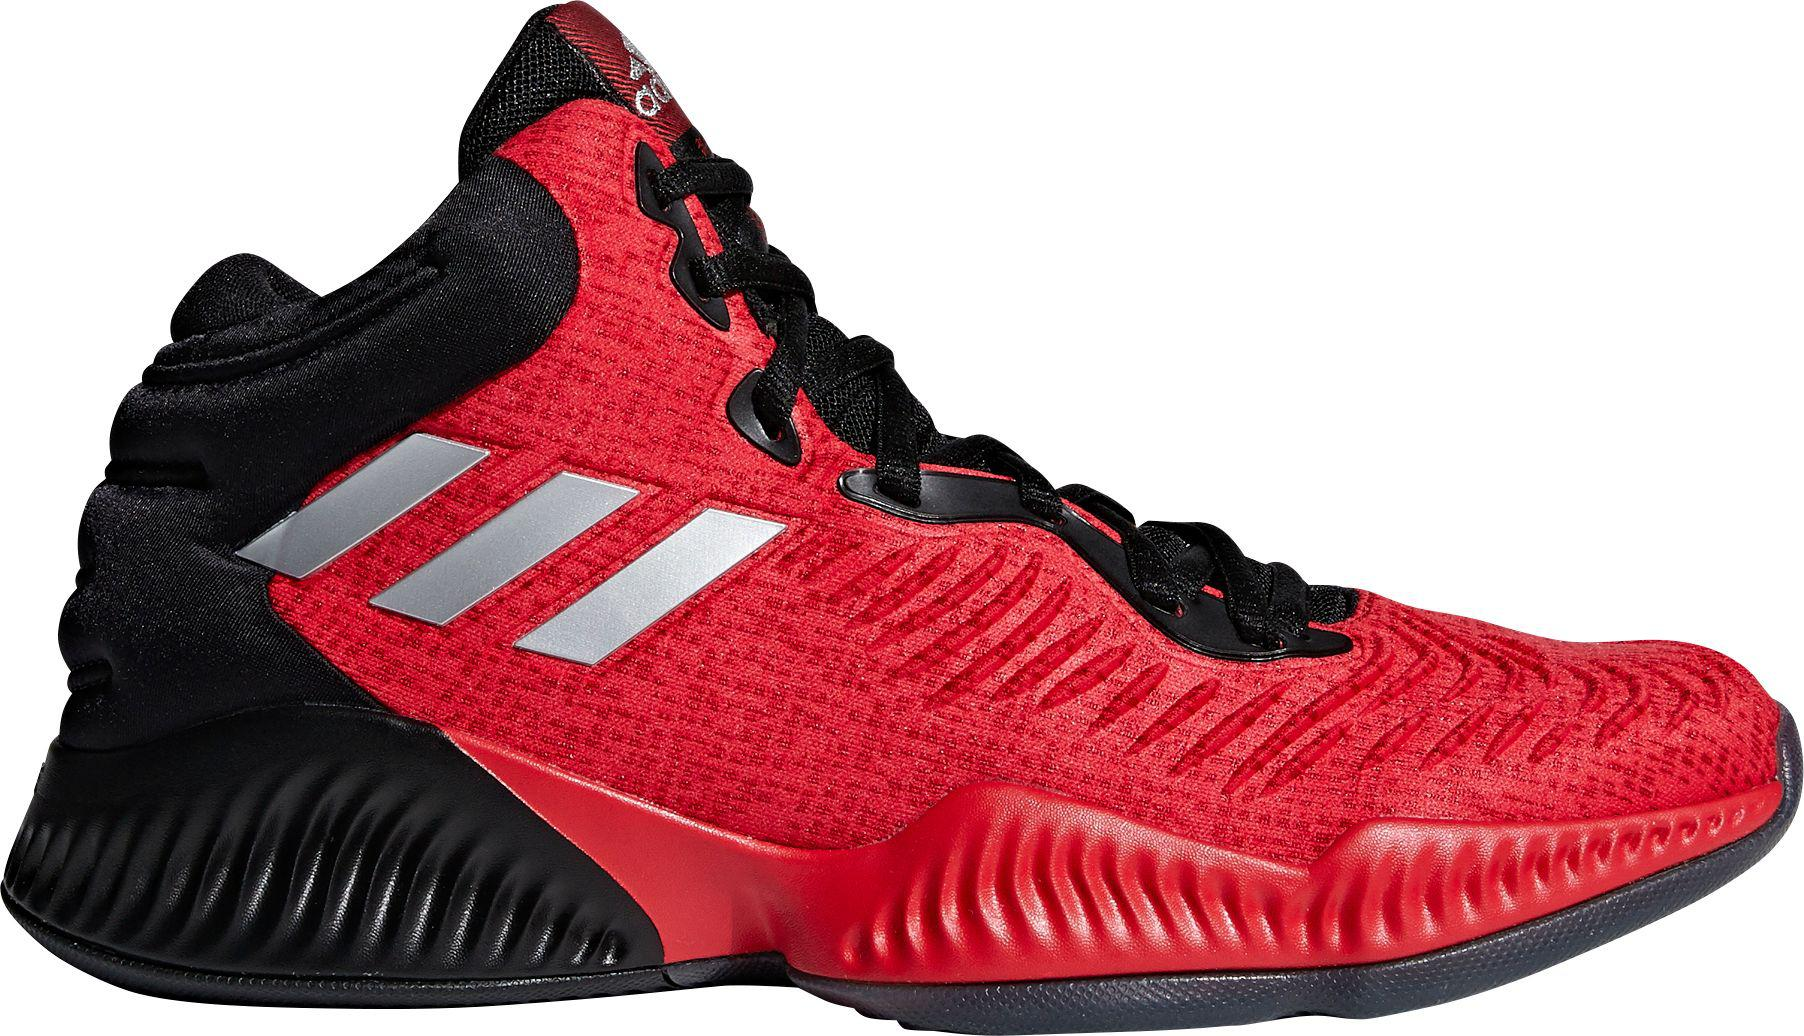 9d8ad2f1f5b74 Lyst - adidas Mad Bounce 2018 Basketball Shoes in Red for Men